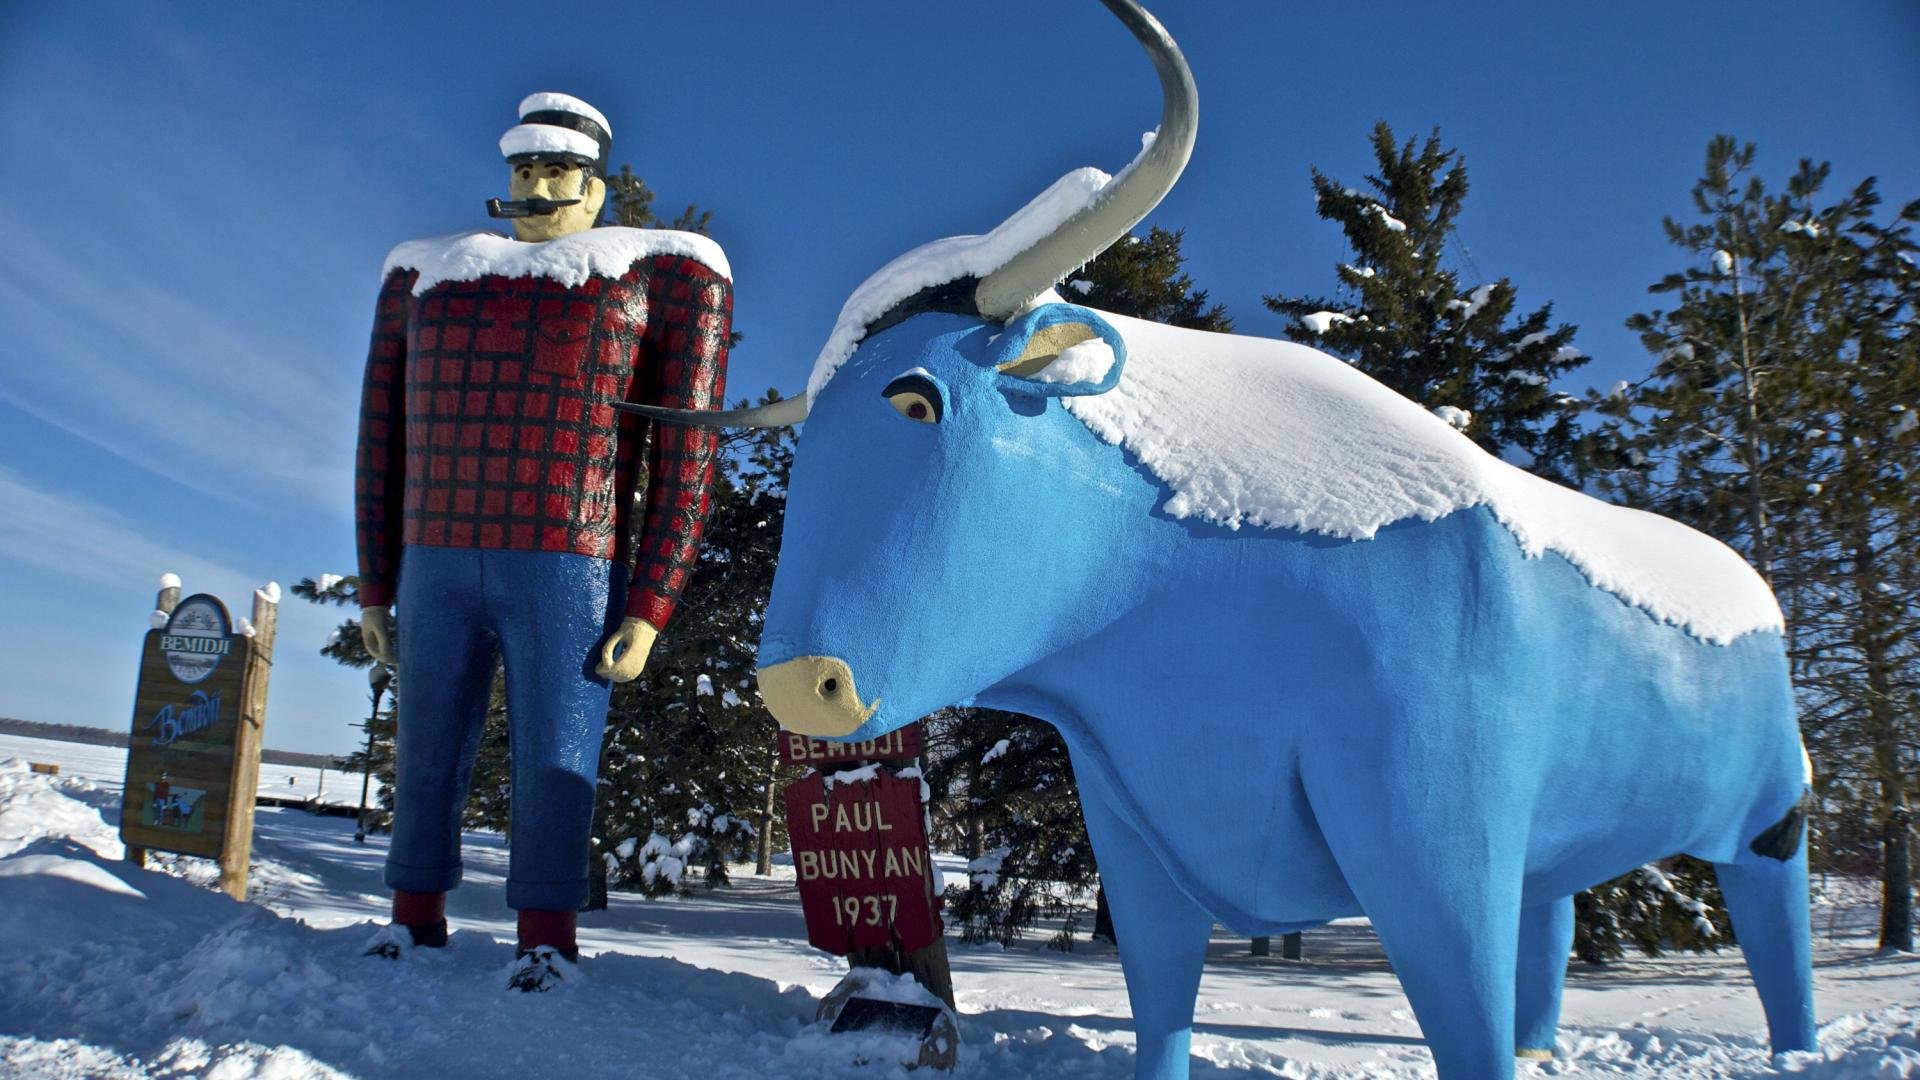 Snow-covered Paul Bunyan and Babe the Blue Ox statues